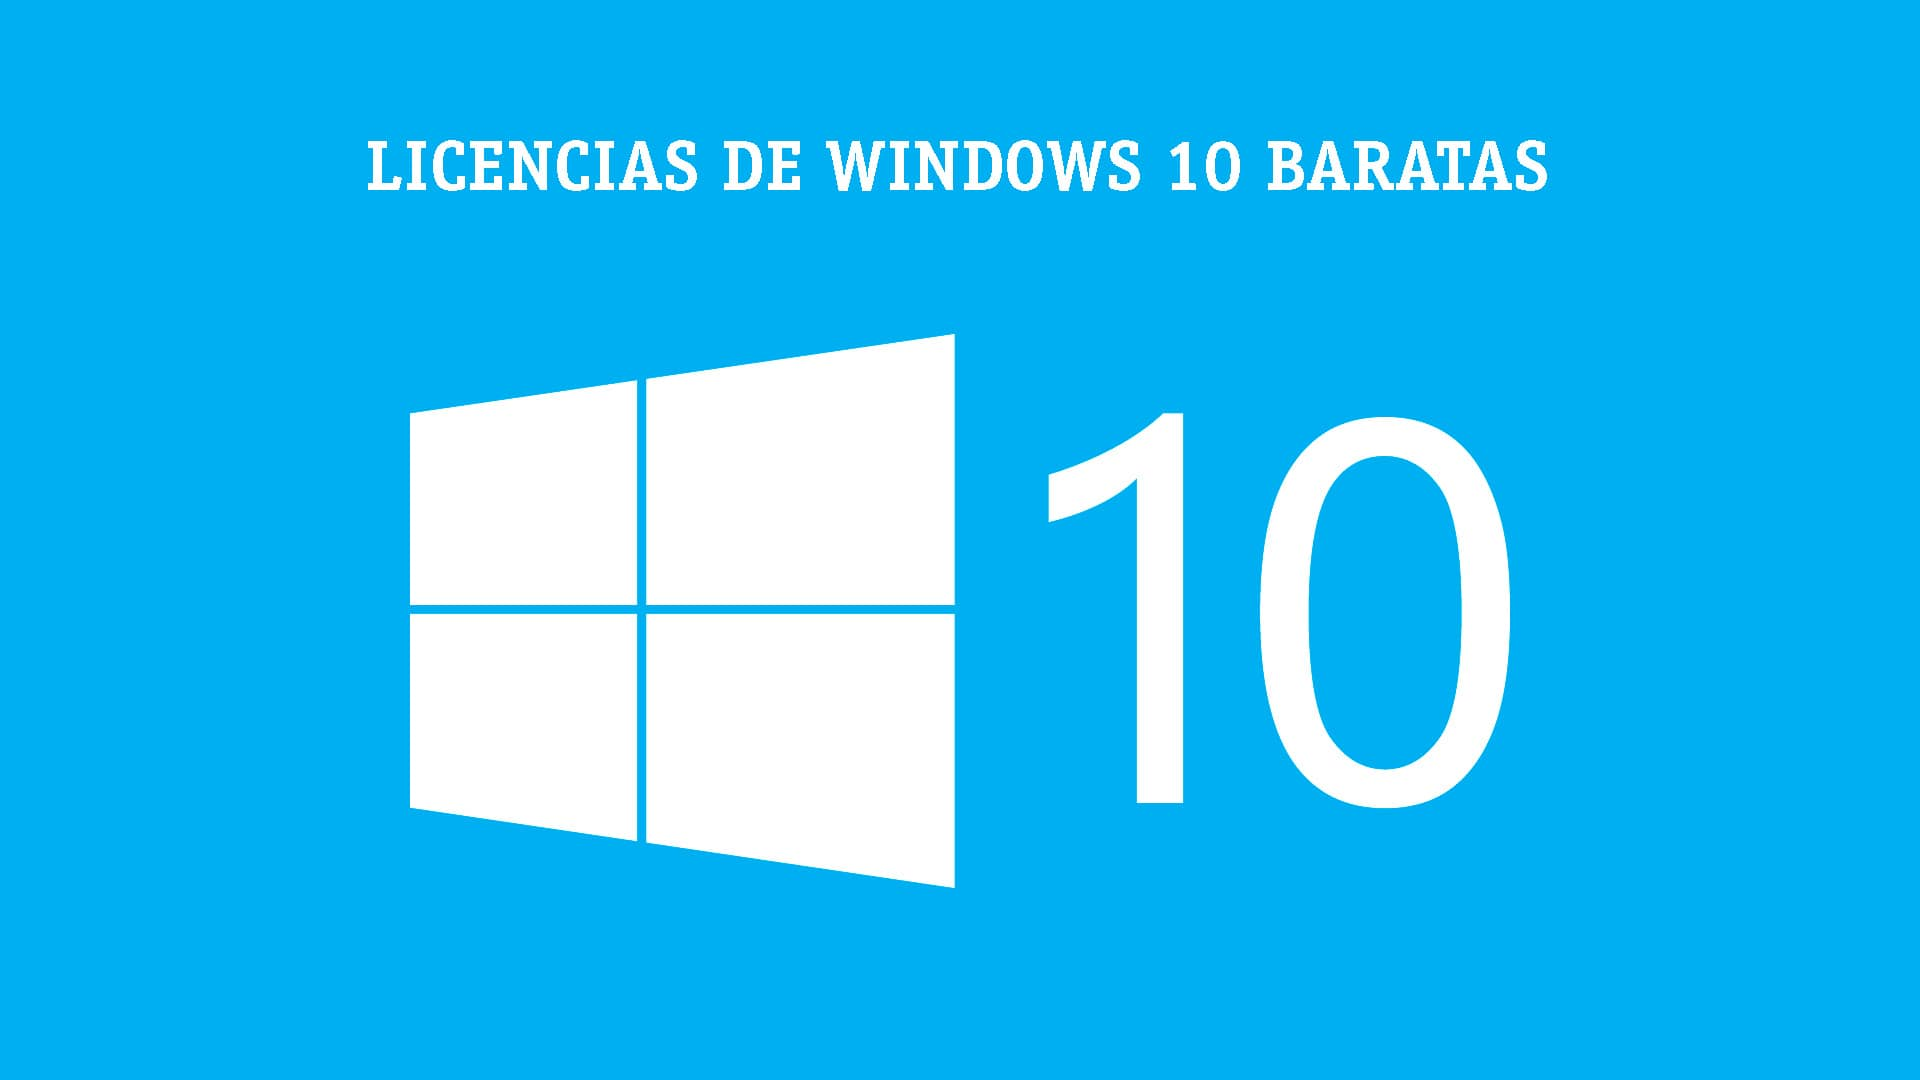 Comprar Libro Electronico De Tinta Electronica Comprar Windows 10 De 64 Y 32 Bits Barato En Amazon